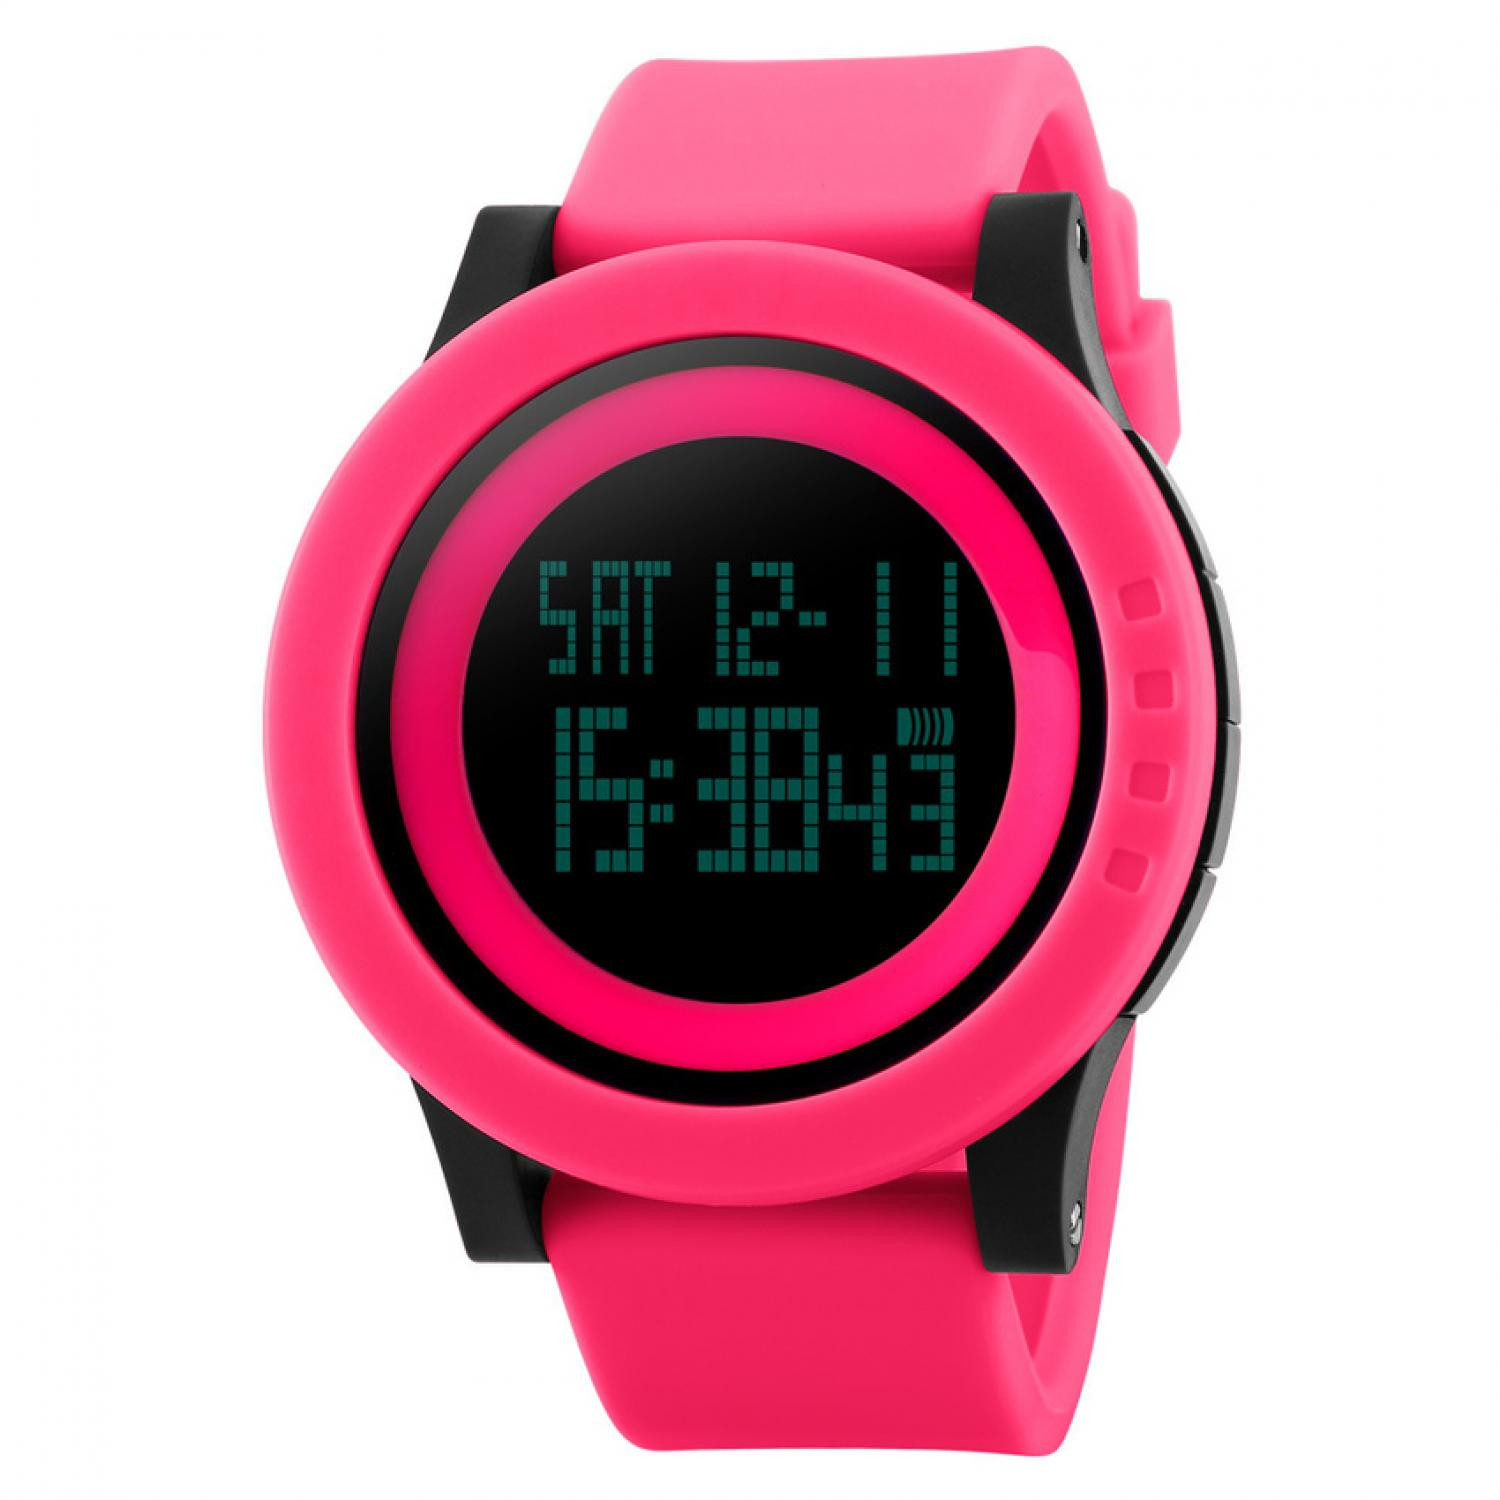 Jam Tangan Pria SKMEI Digital Sport Watch Original DG1142 Pink